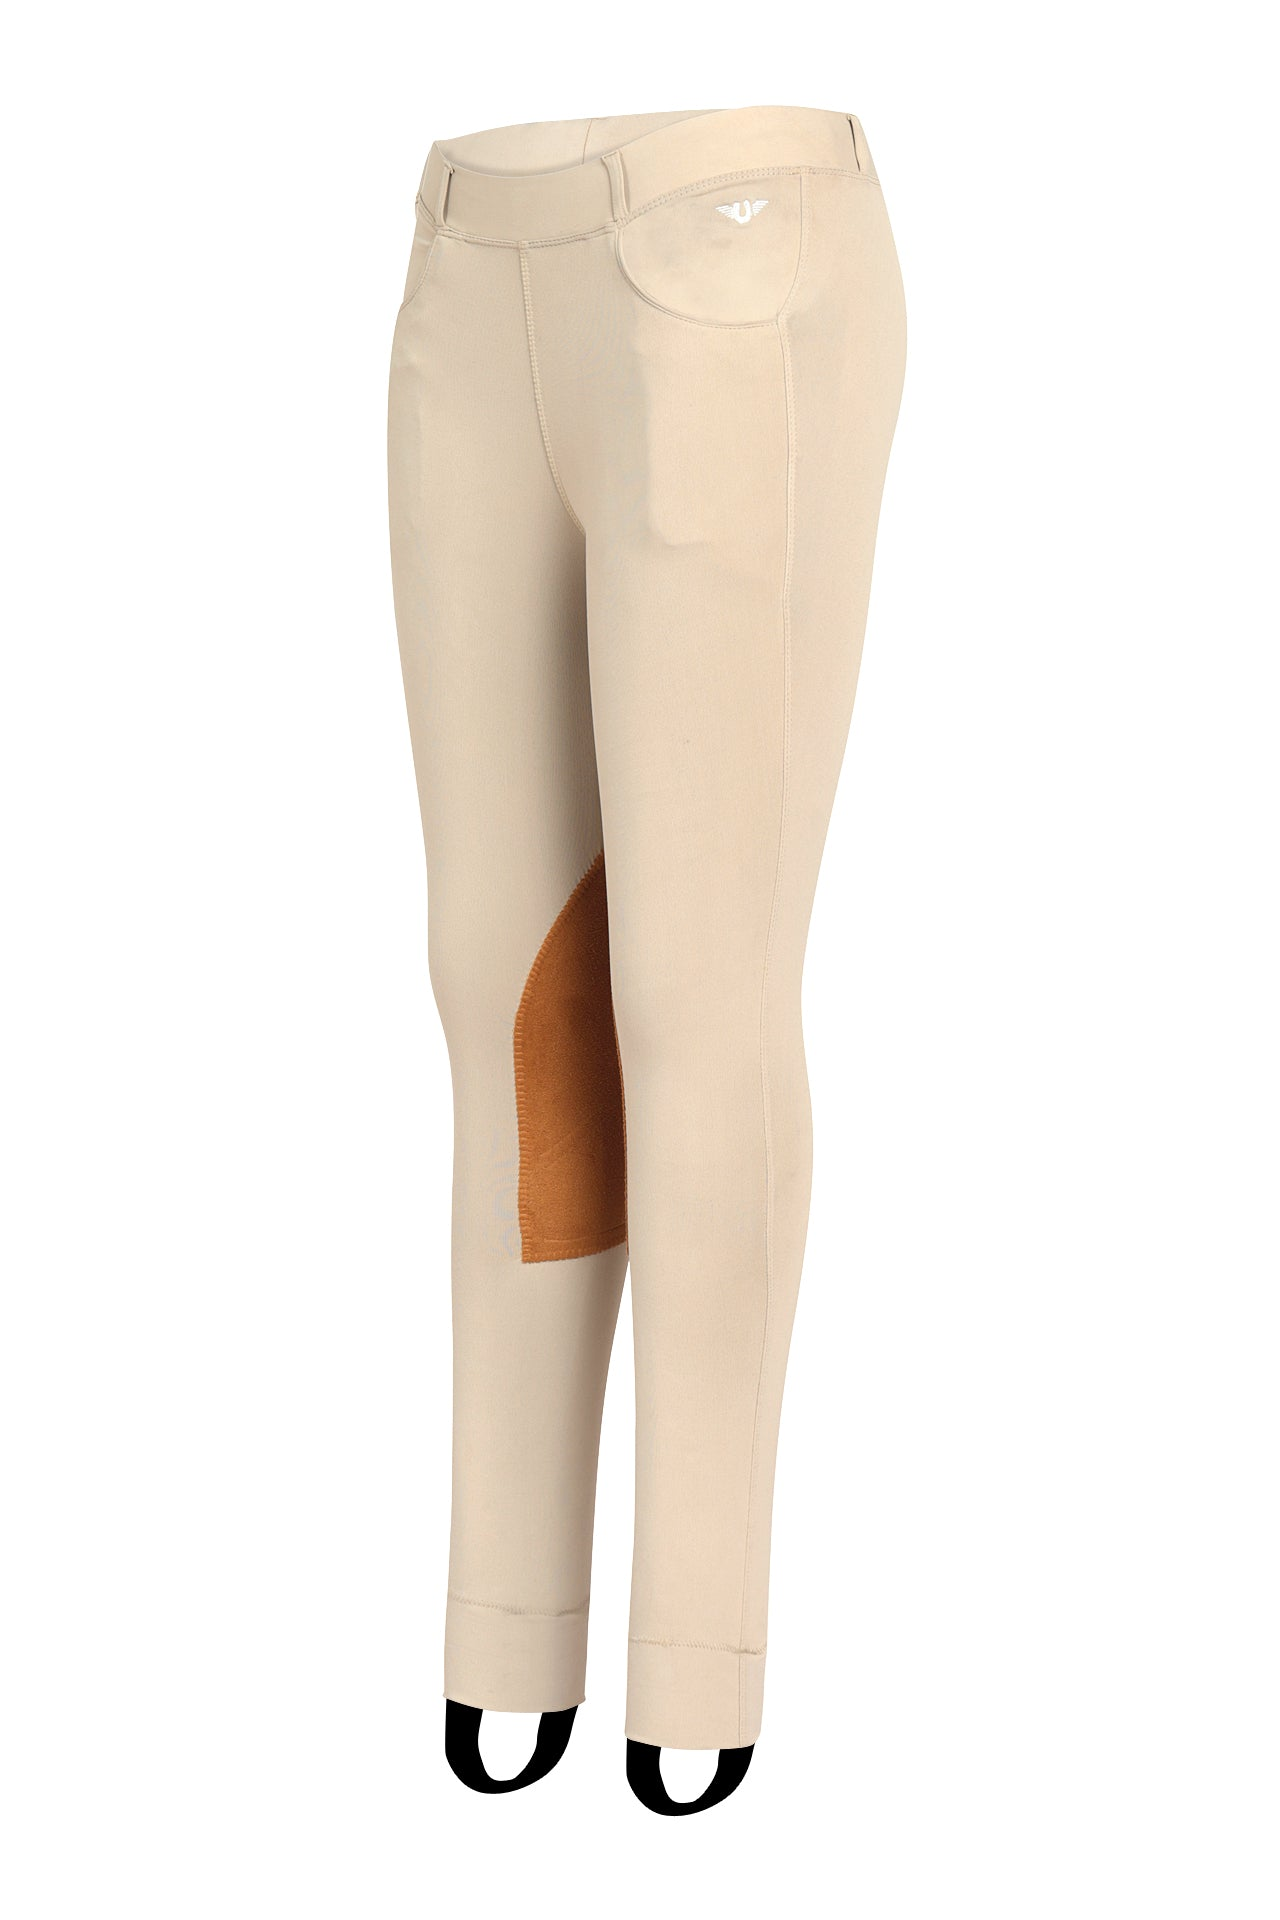 TUFFRIDER CHILDREN'S PRIME JODHPURS WITH BELT LOOPS - TuffRider - Breeches.com